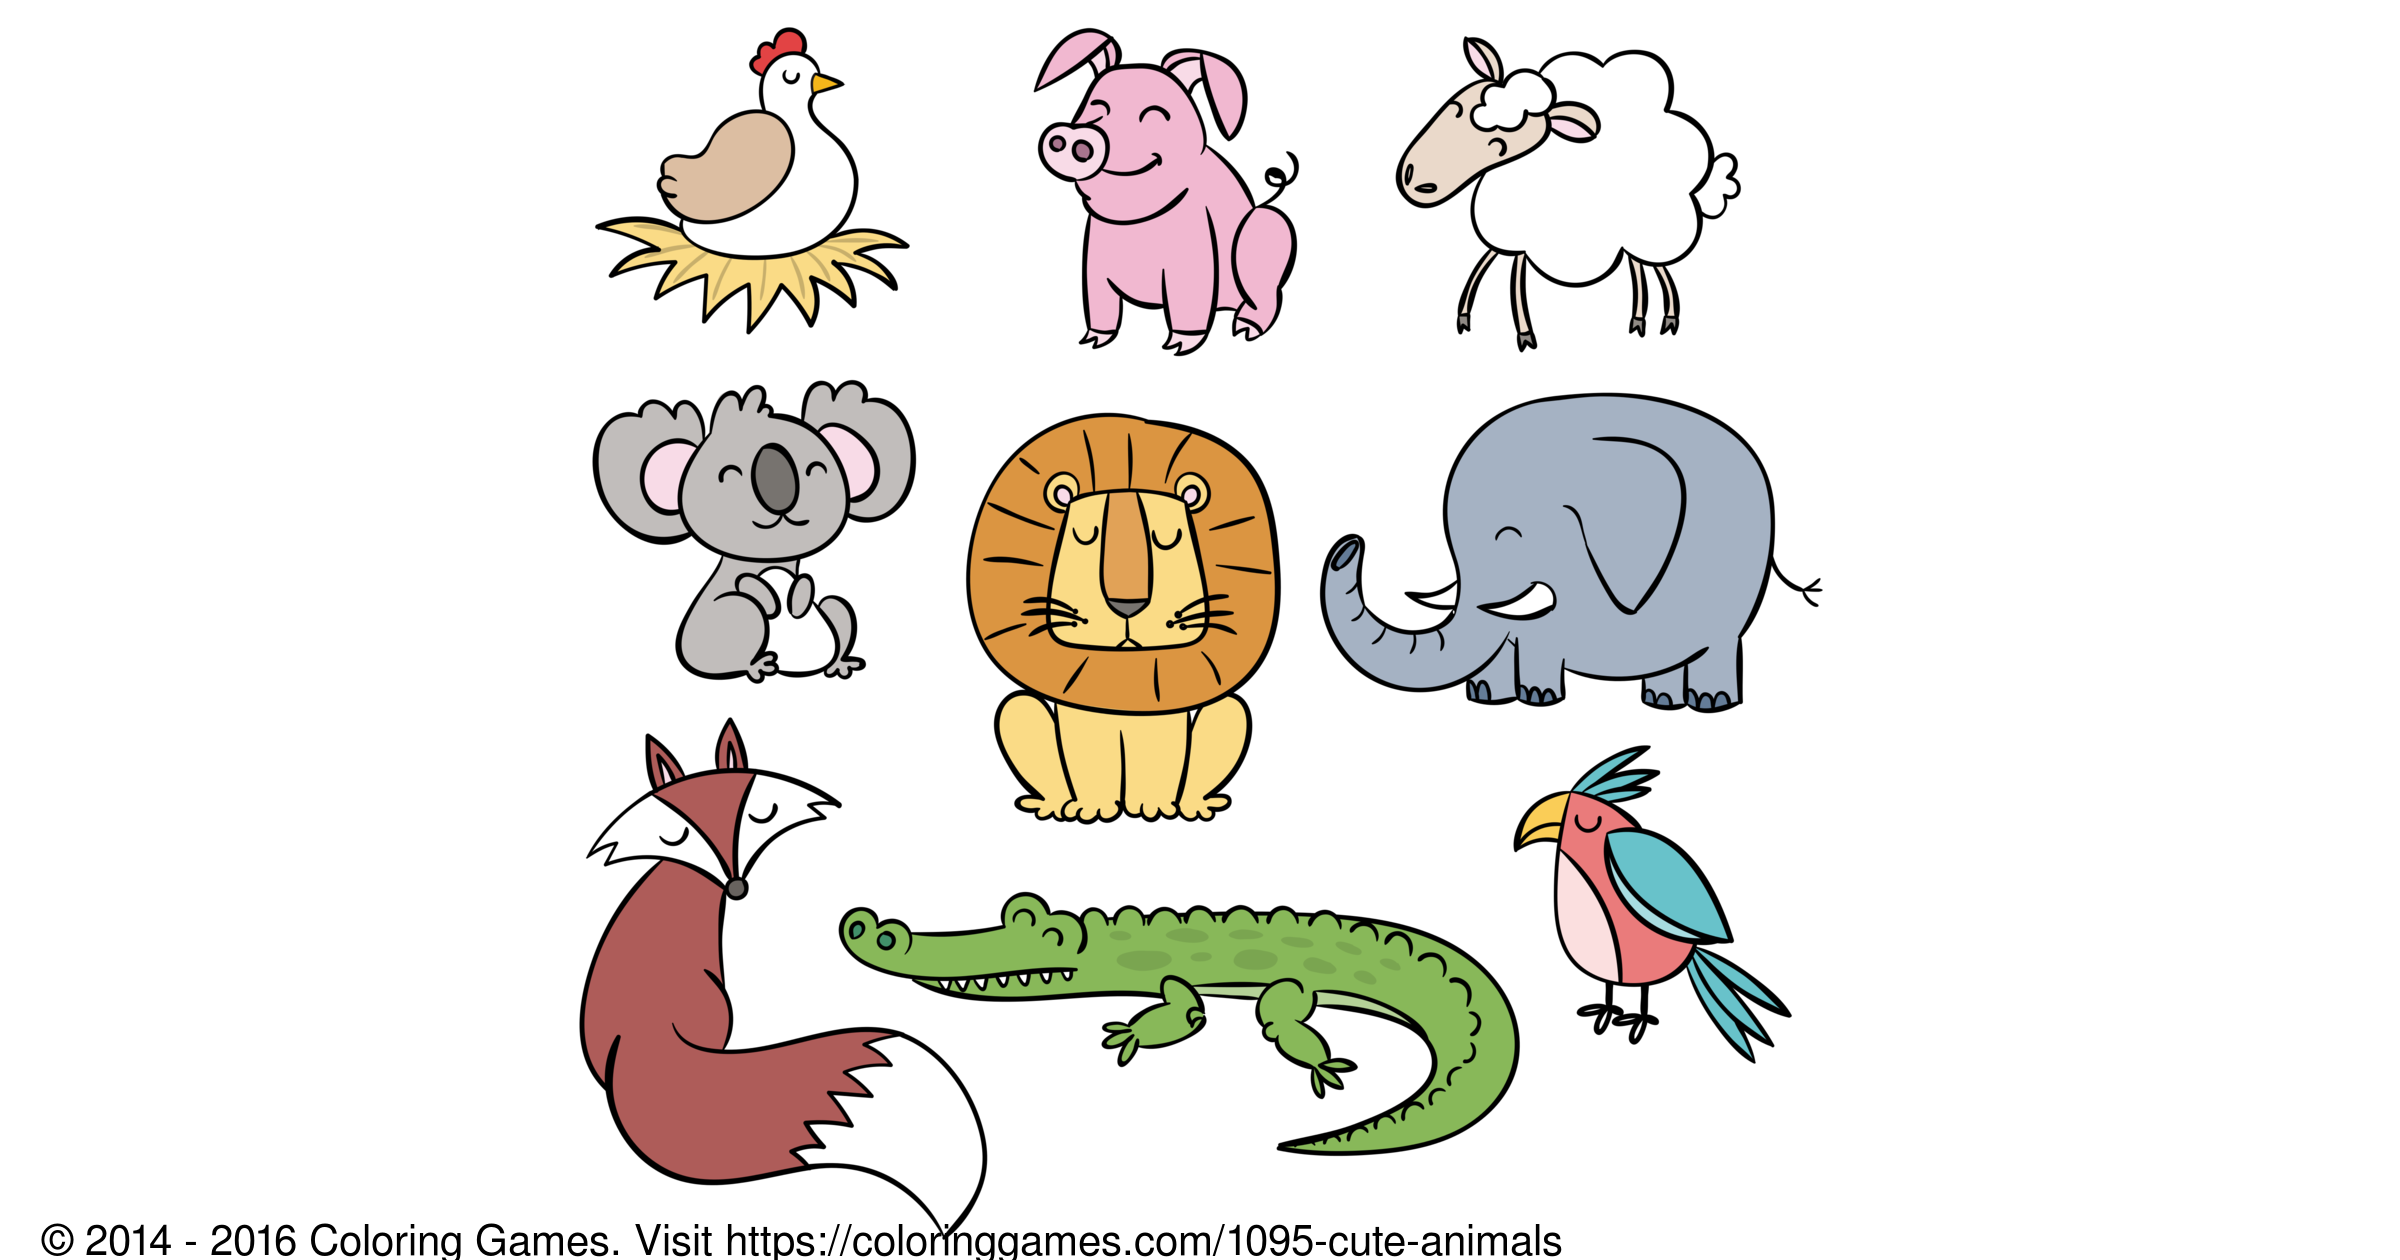 Cute animals - Coloring Games and Coloring Pages